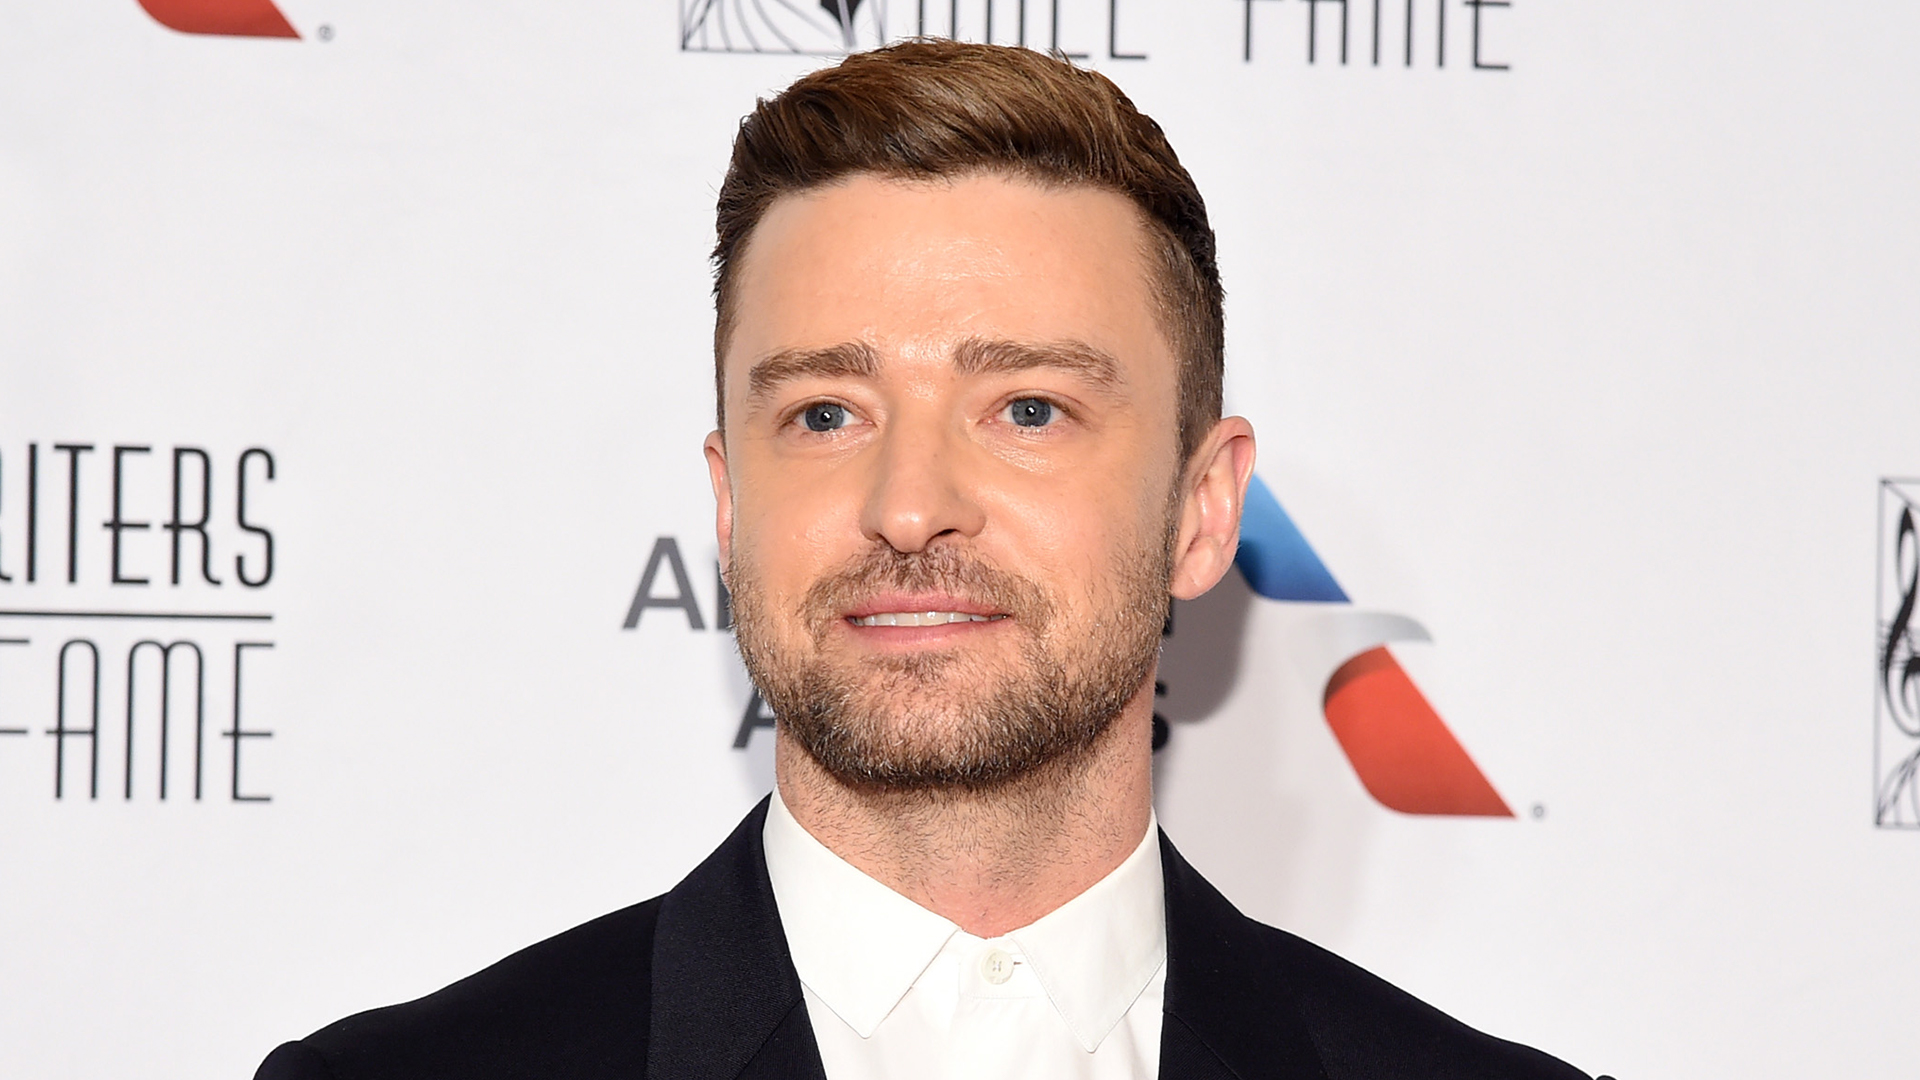 Justin Timberlake Wants Confederate Monuments Removed Across U.S.